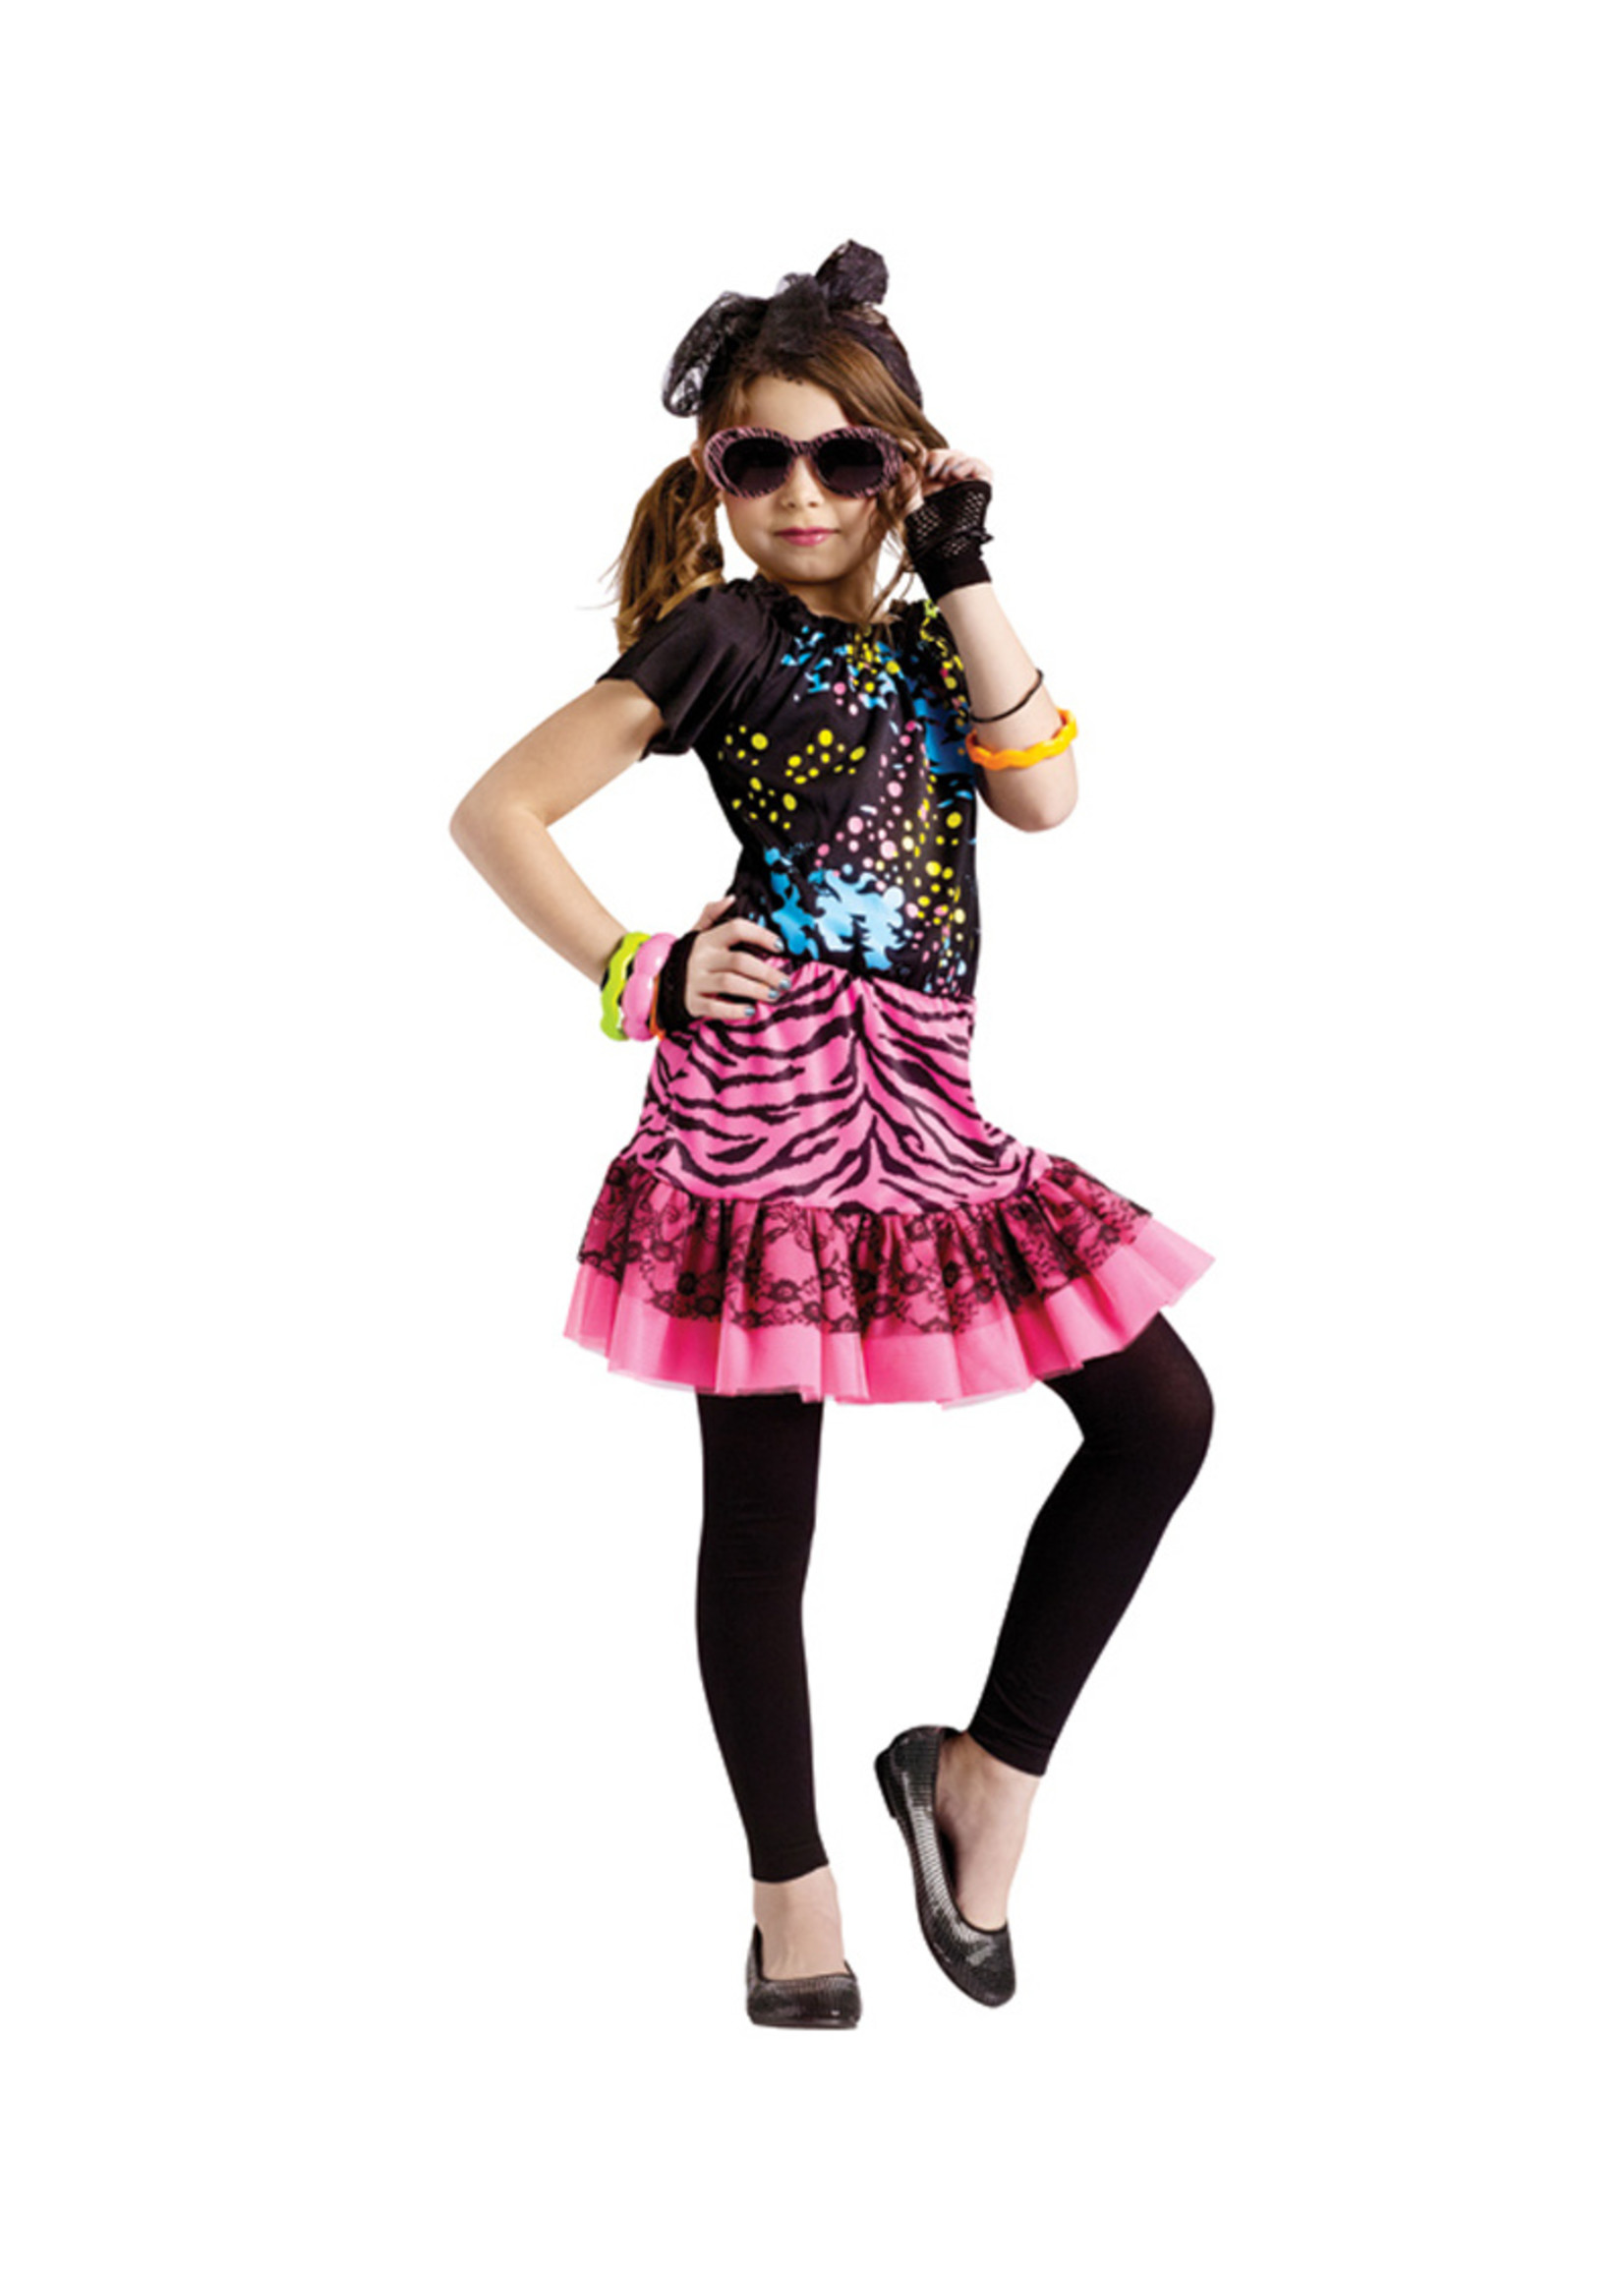 80's Pop Child Costume - Girls